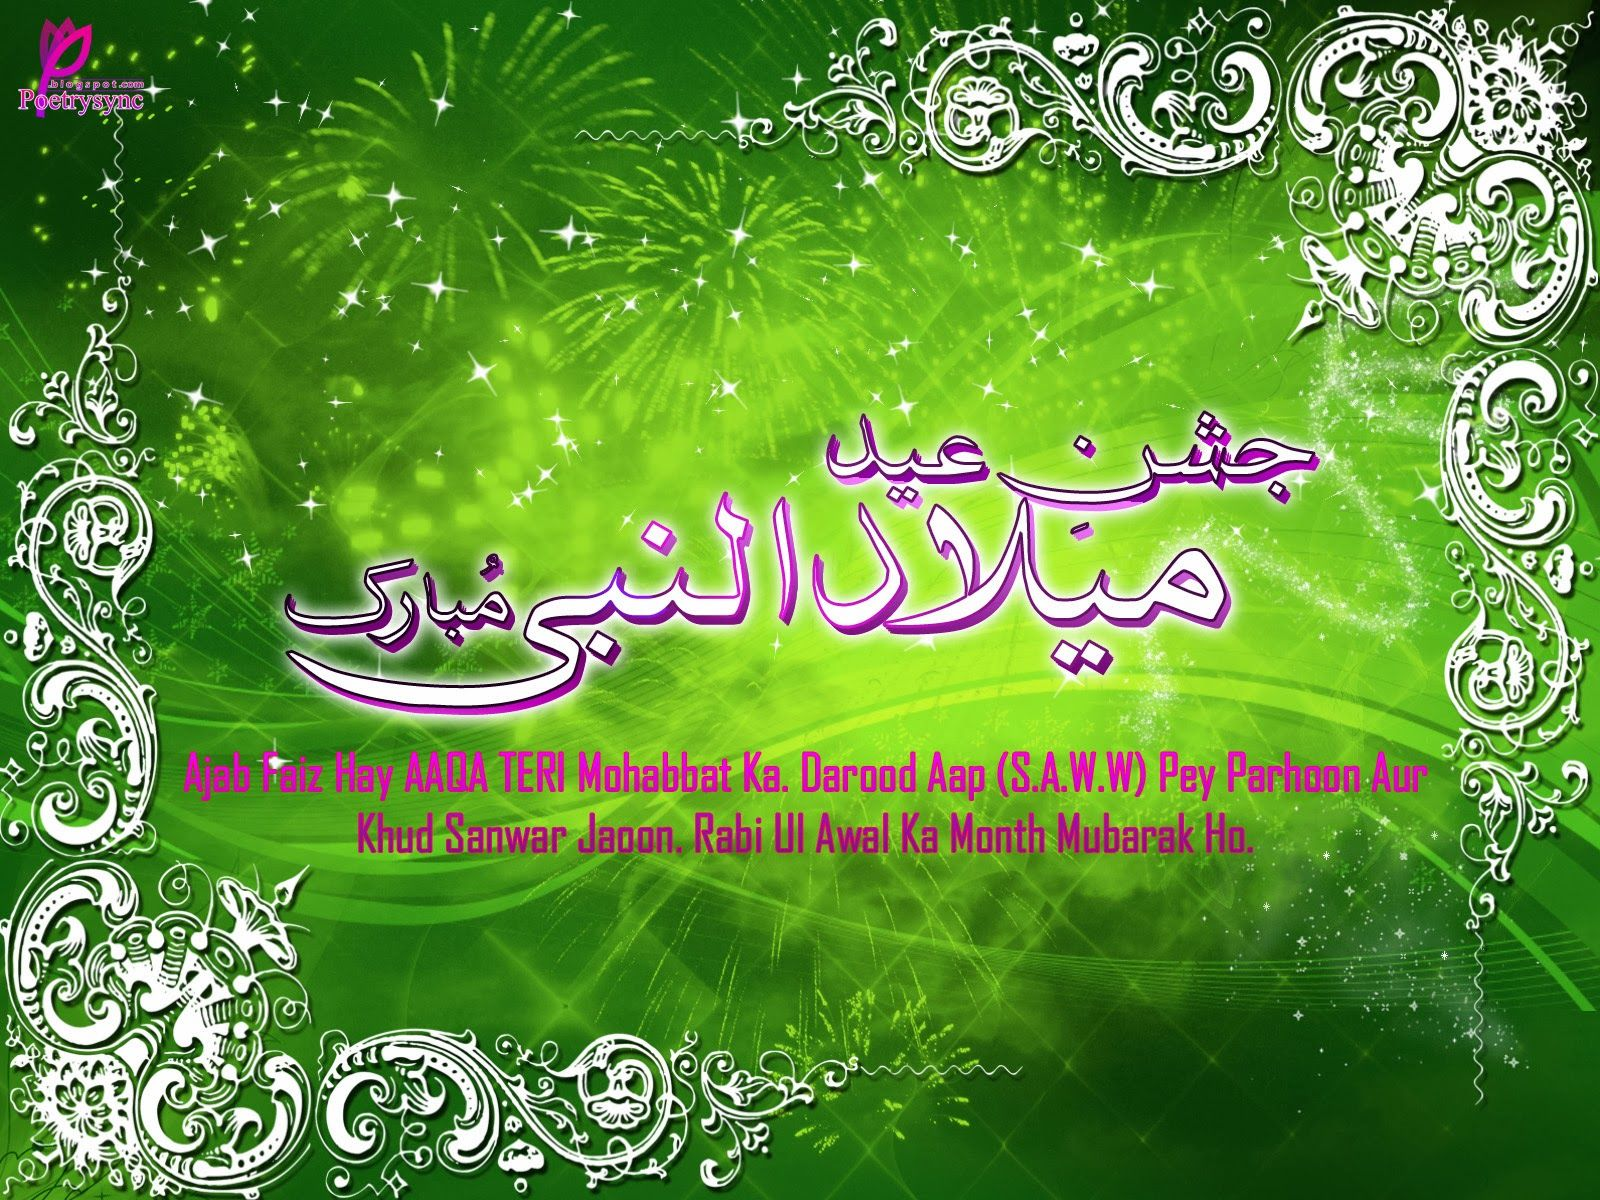 Eid e milad un nabi urdu shayari sms with greetings images eid e milad un nabi urdu shayari sms with greetings images m4hsunfo